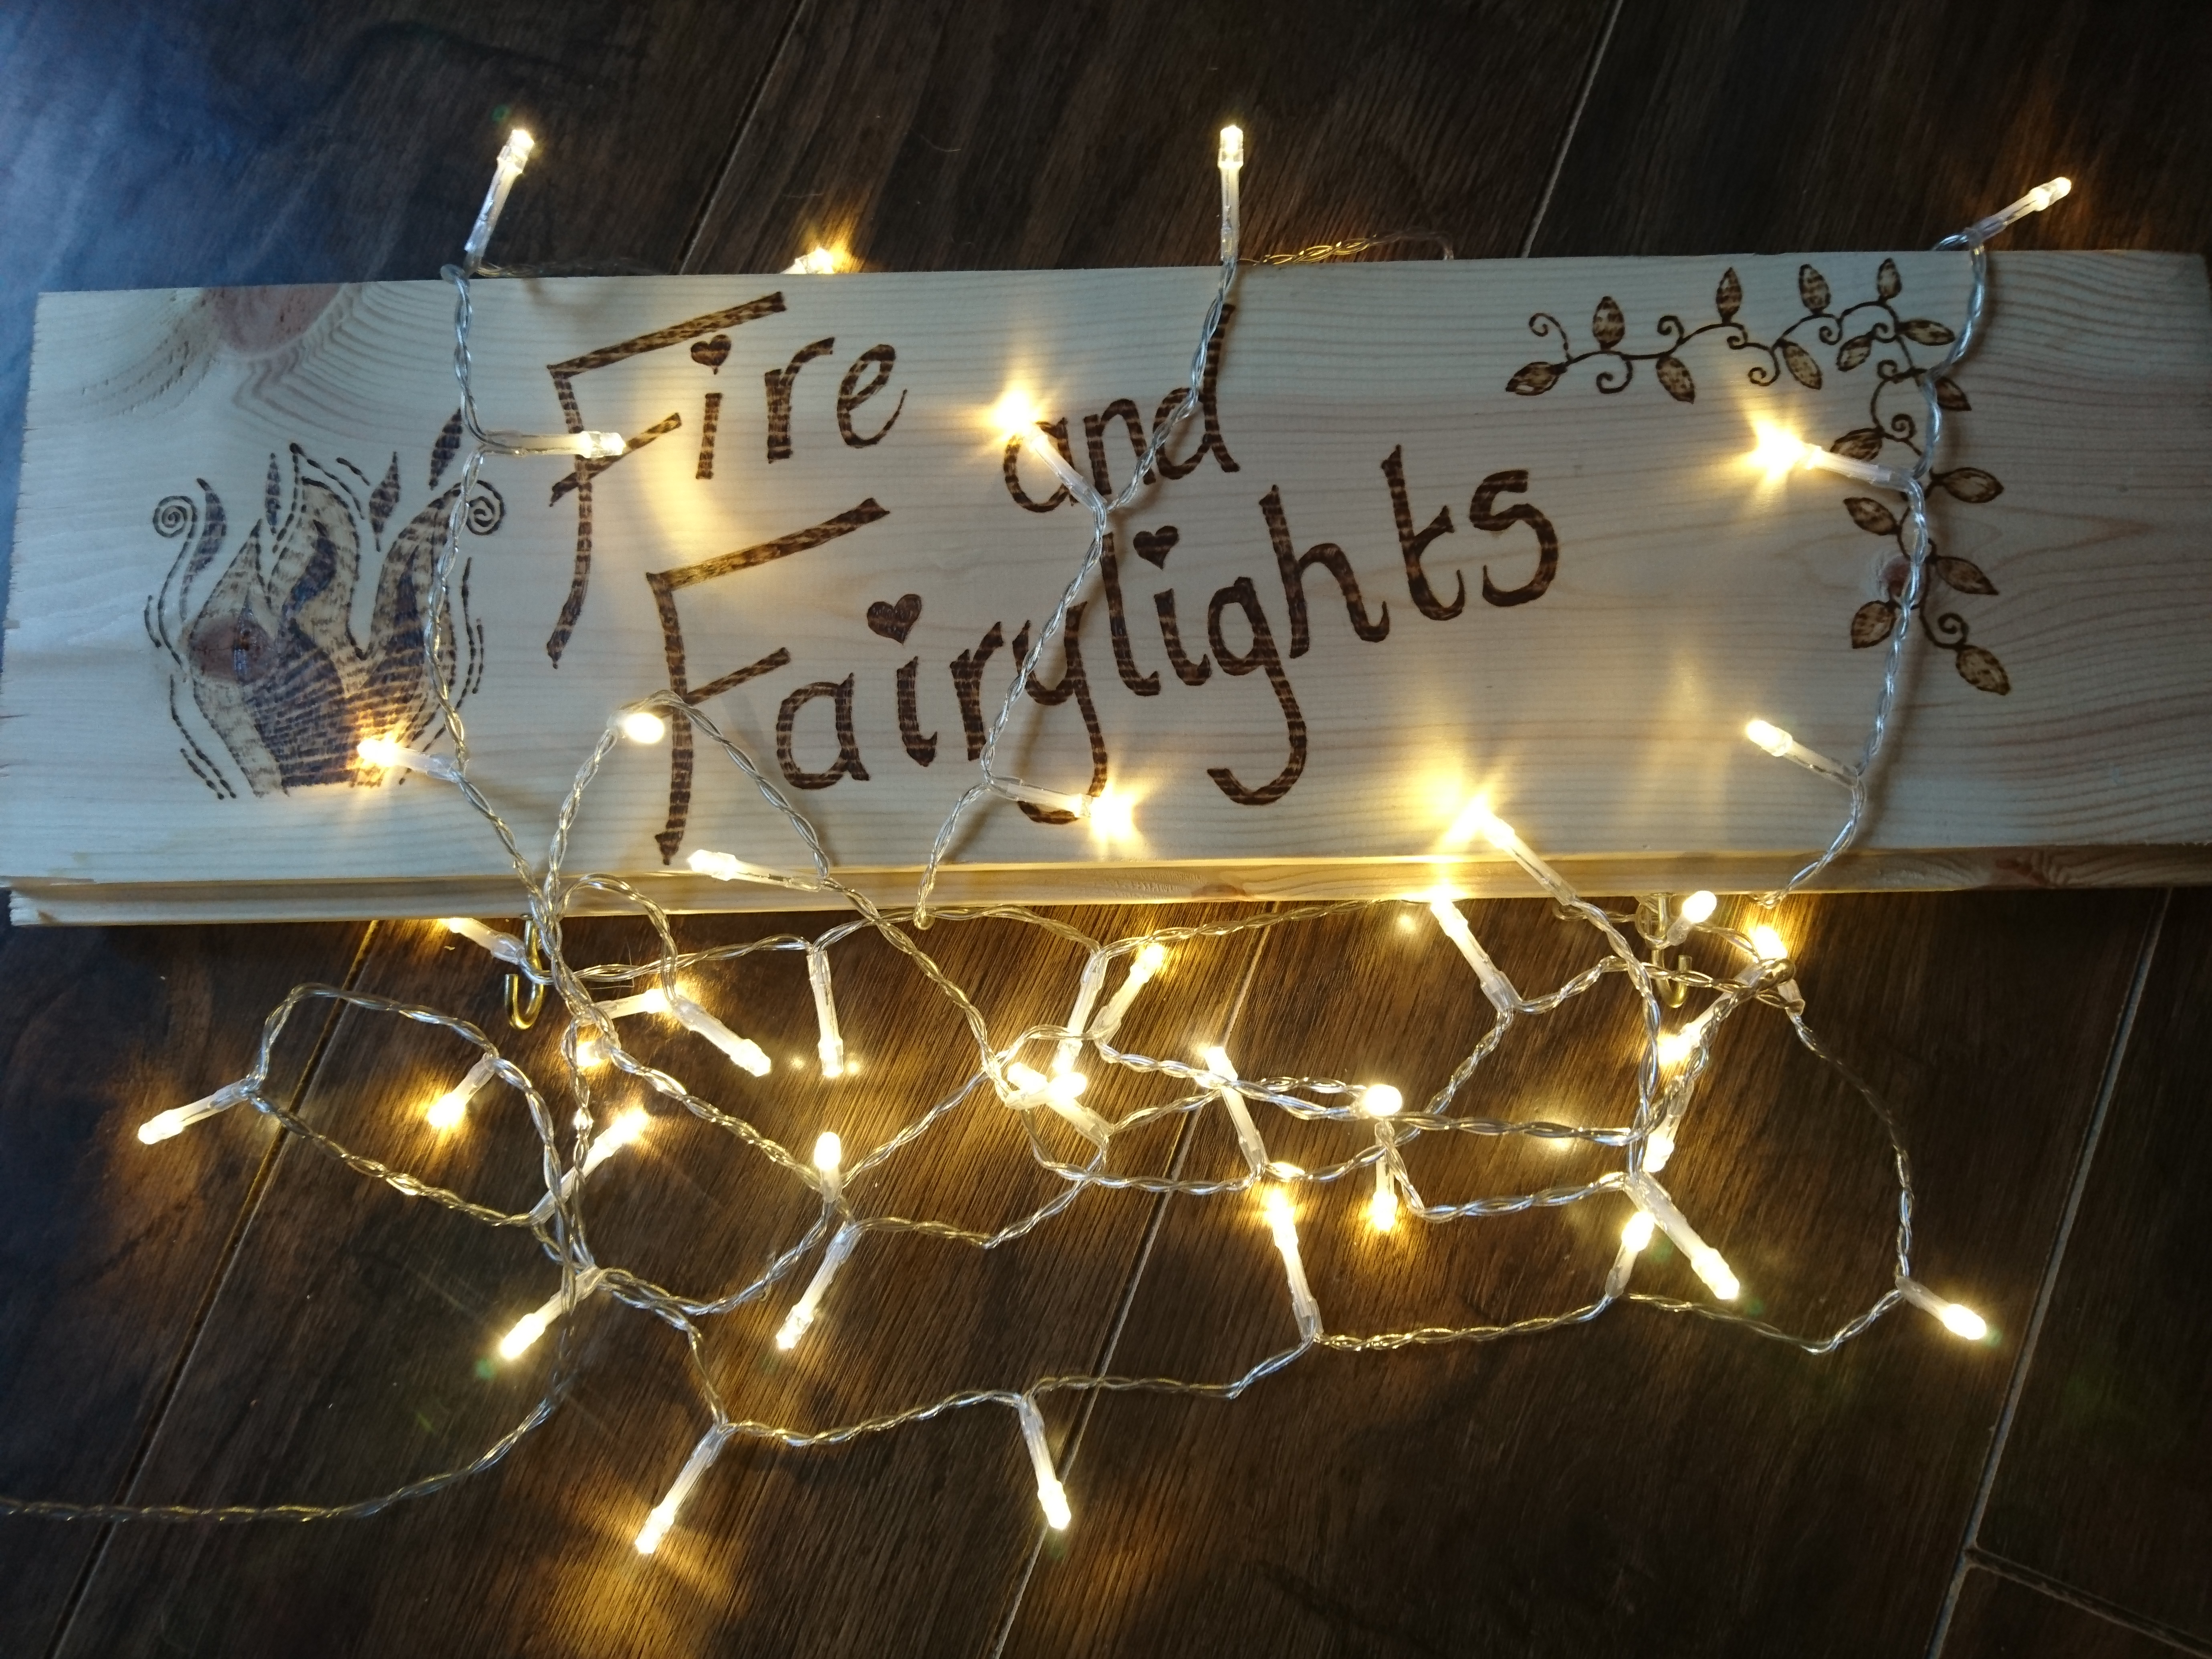 Fire and Fairylights